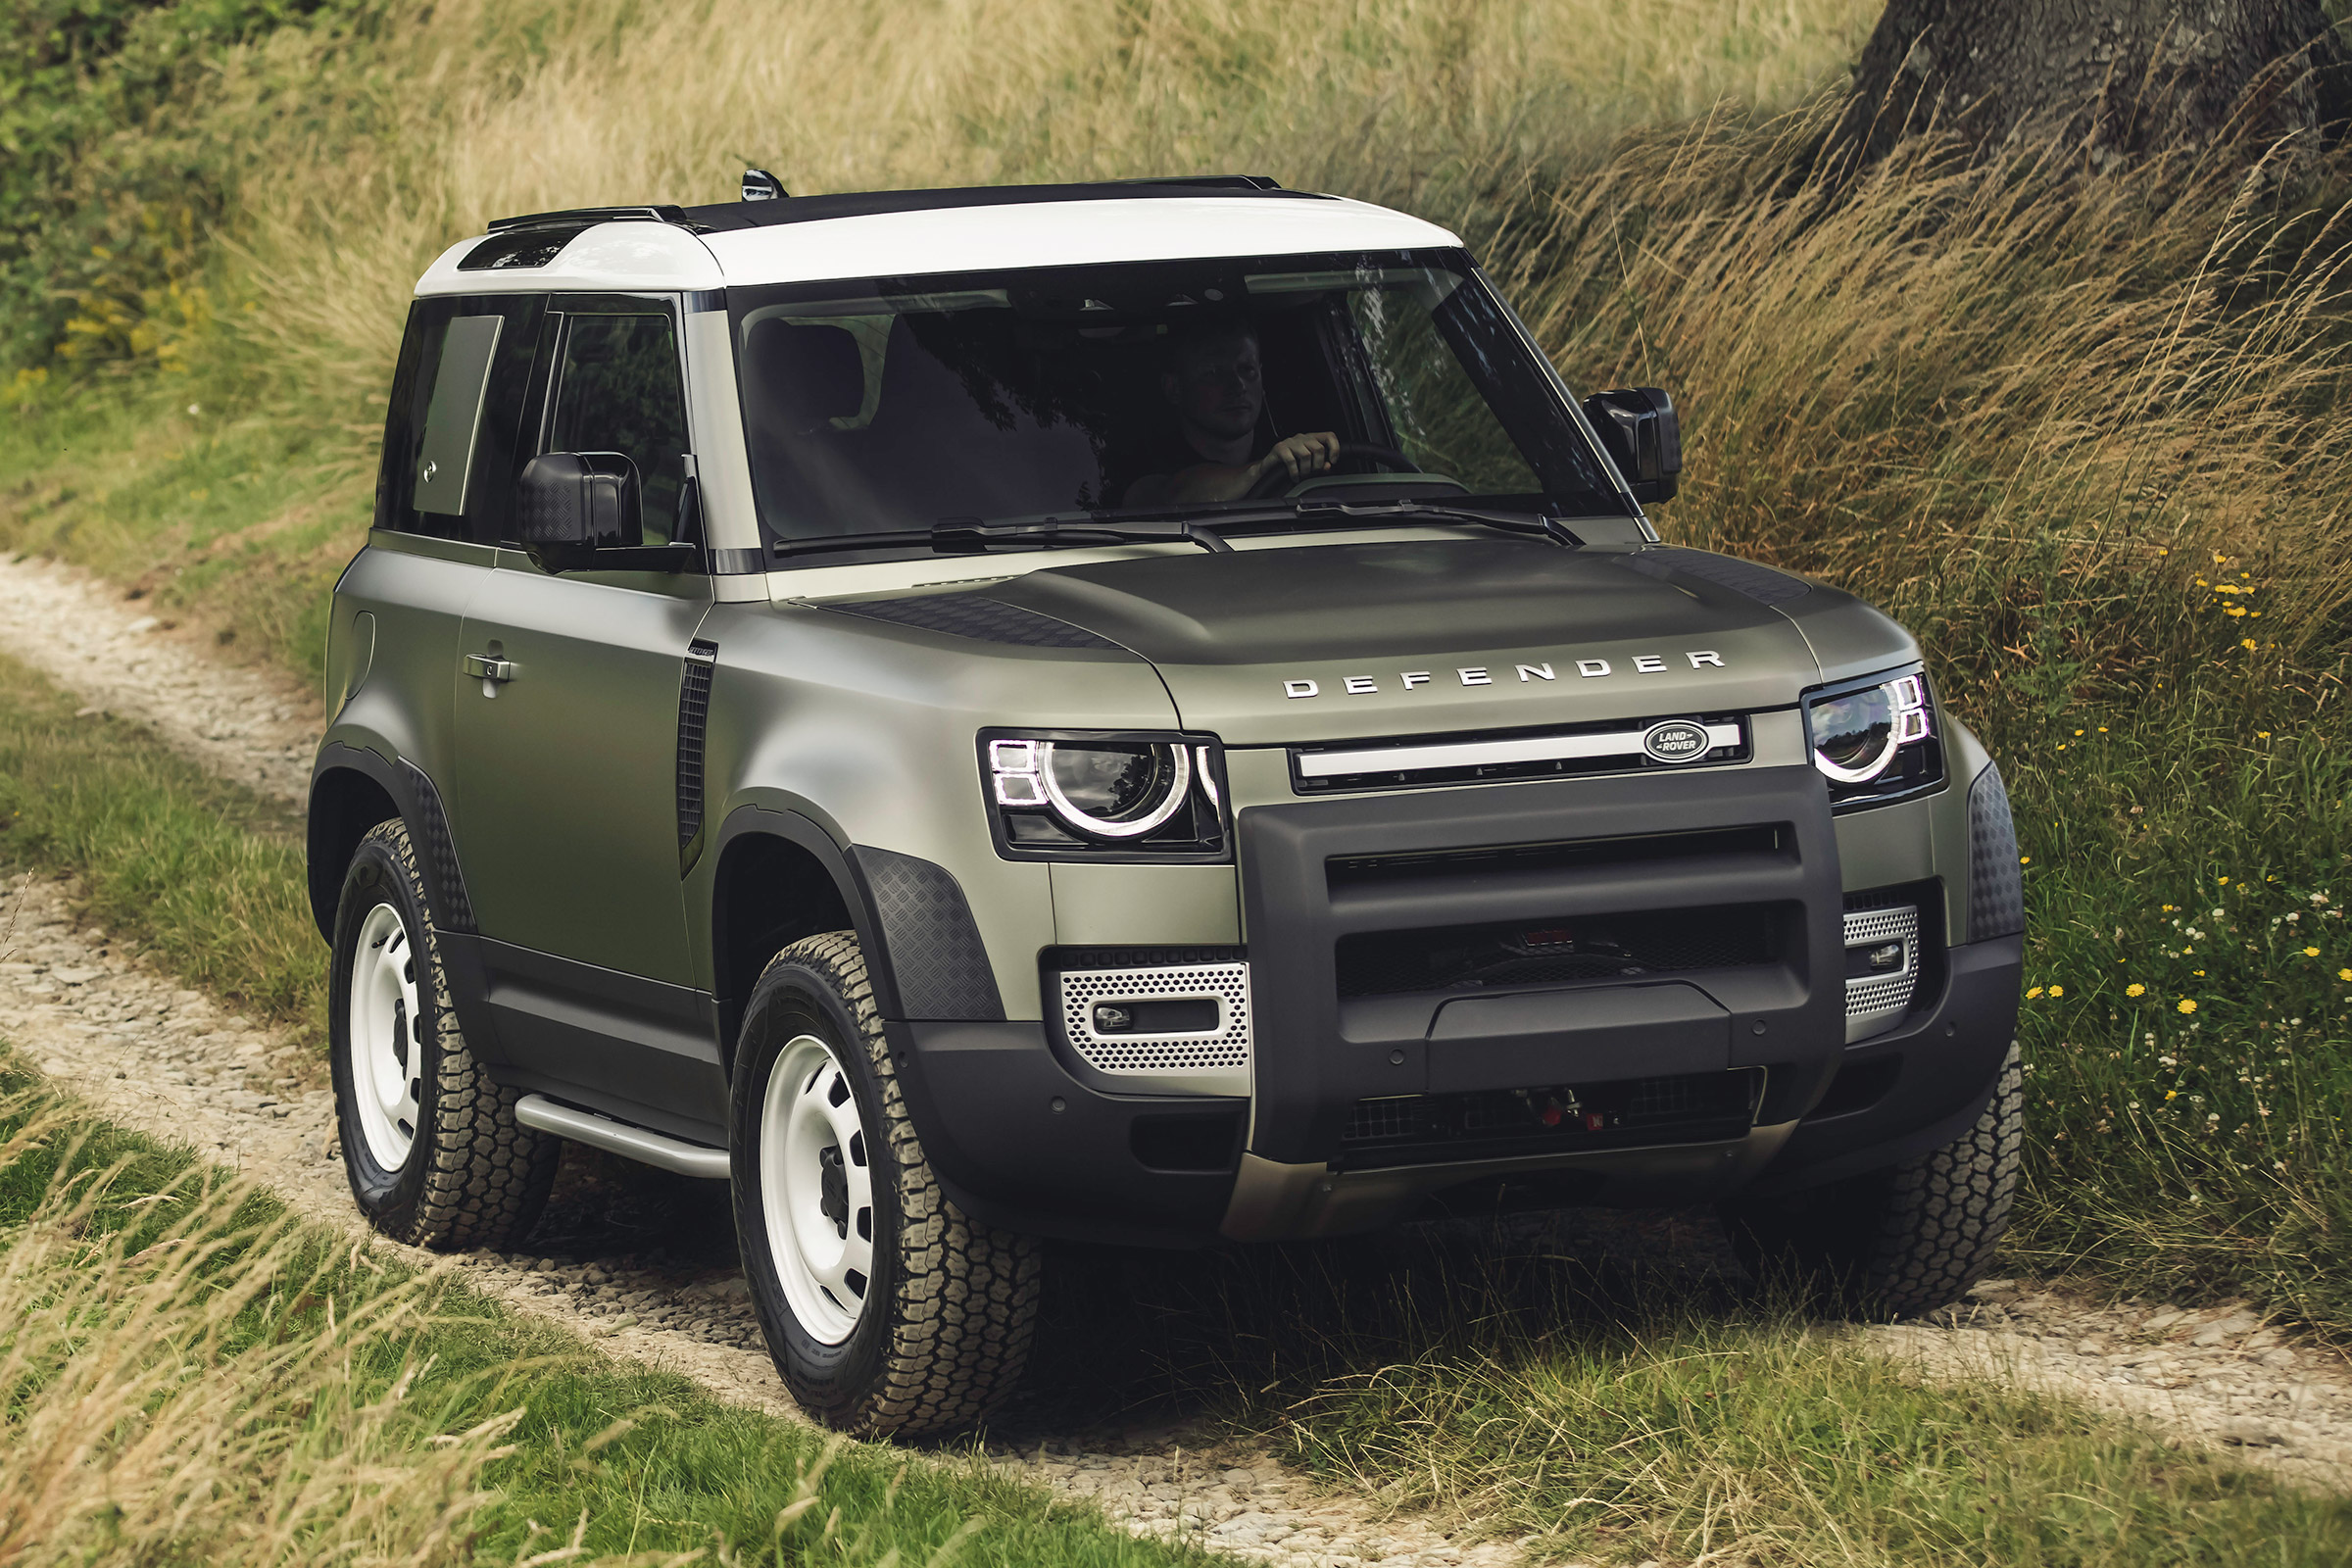 New Land Rover Defender - 2020 4x4 arrives with big, muddy ...